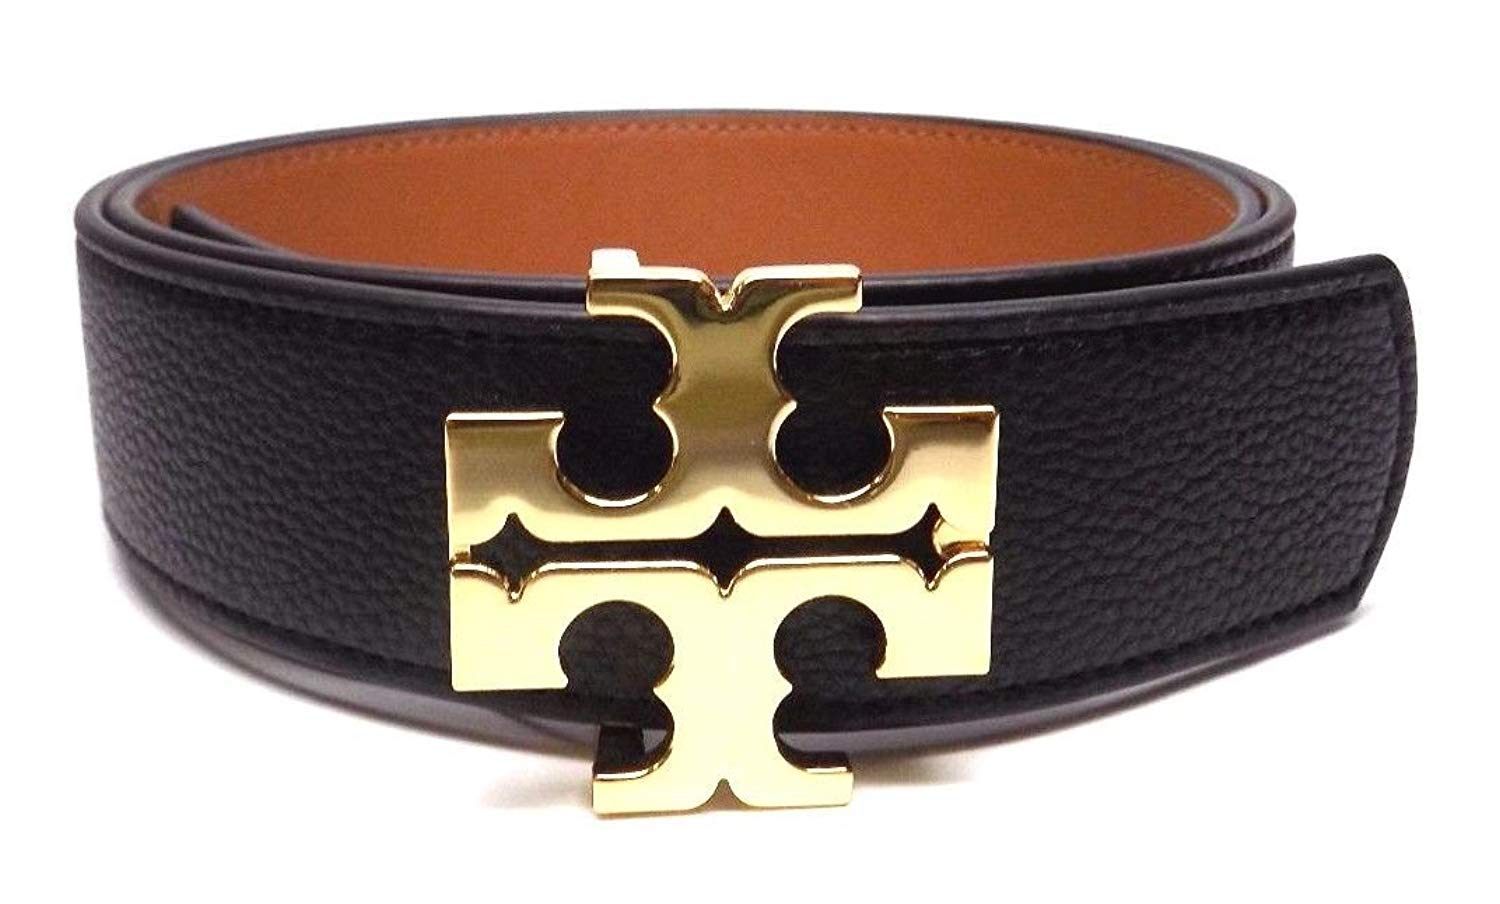 Tory Burch Women's 1/2'' 0.5'' Genuine Leather Square Logo Buckle Skinny Belt Black Brown (Large)